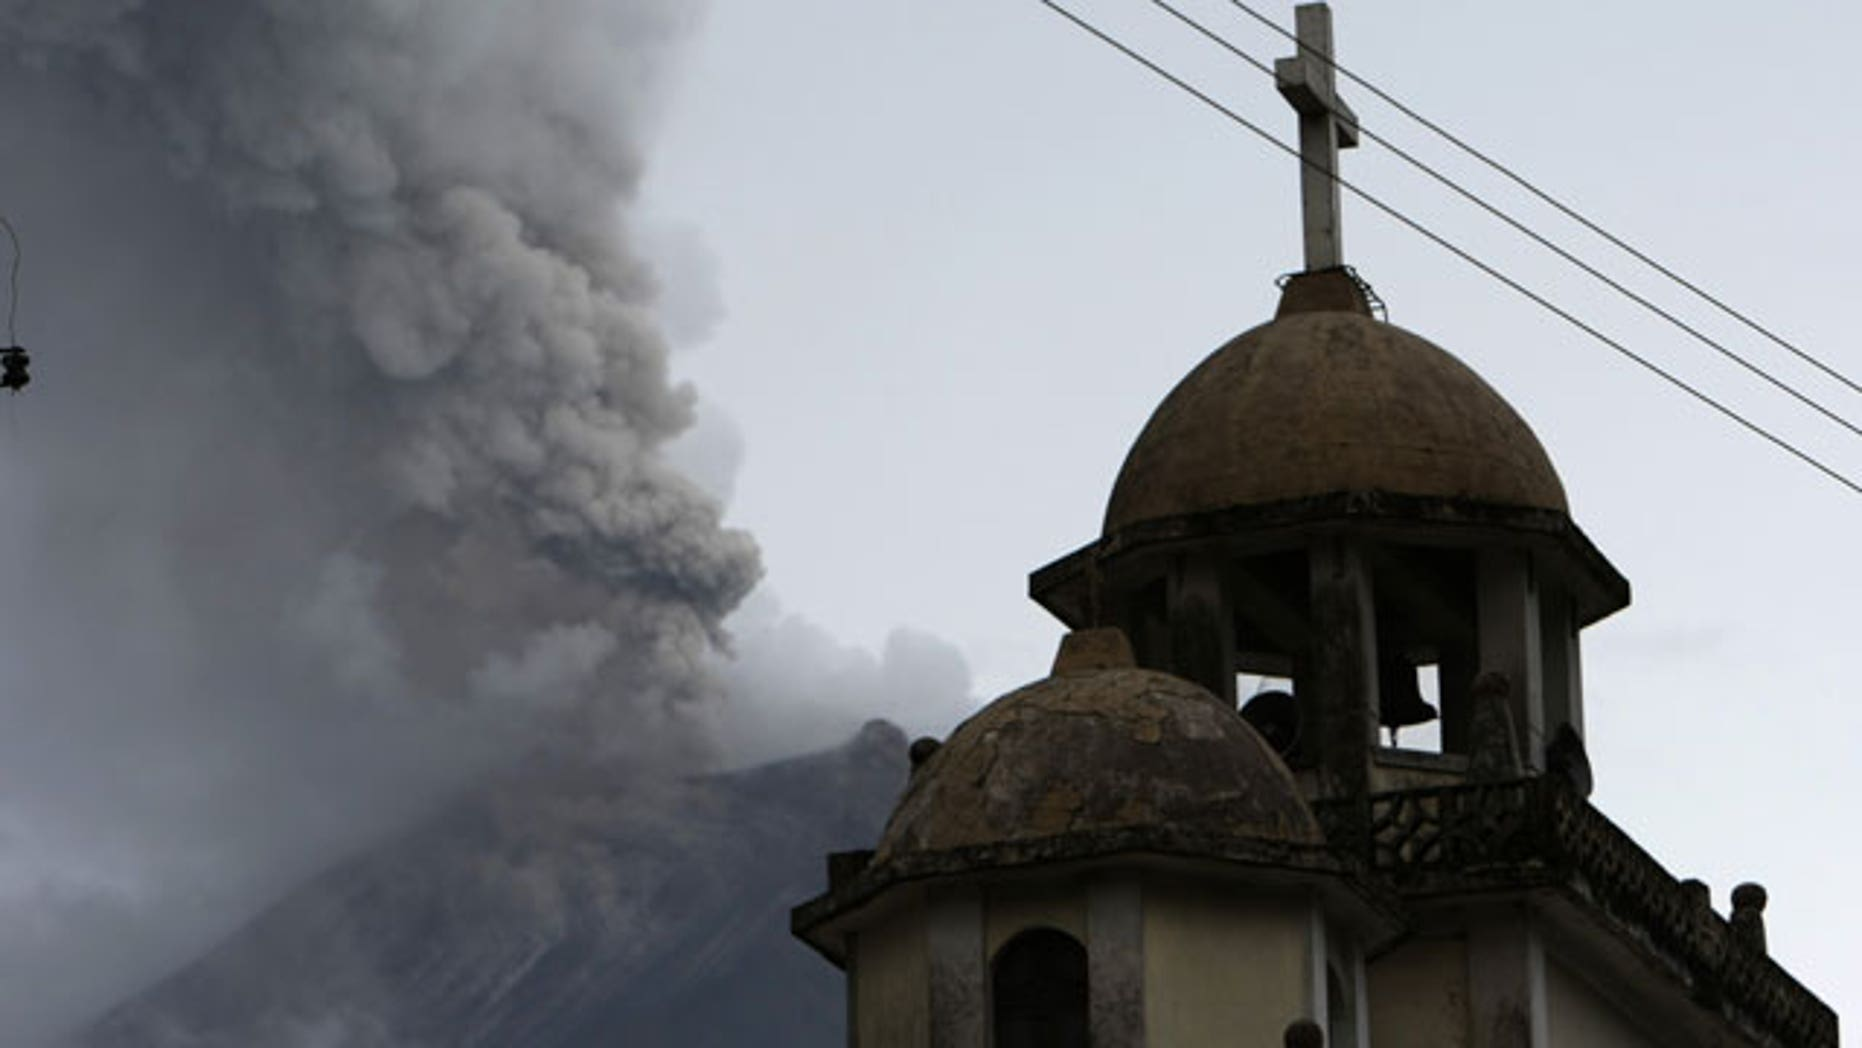 A view of Cotalo's church, backdropped by the Tungurahua volcano spewing ashes in Cotalo, central Ecuador, Friday, May 28, 2010. The Tungurahua has been constantly erupting since 1999.